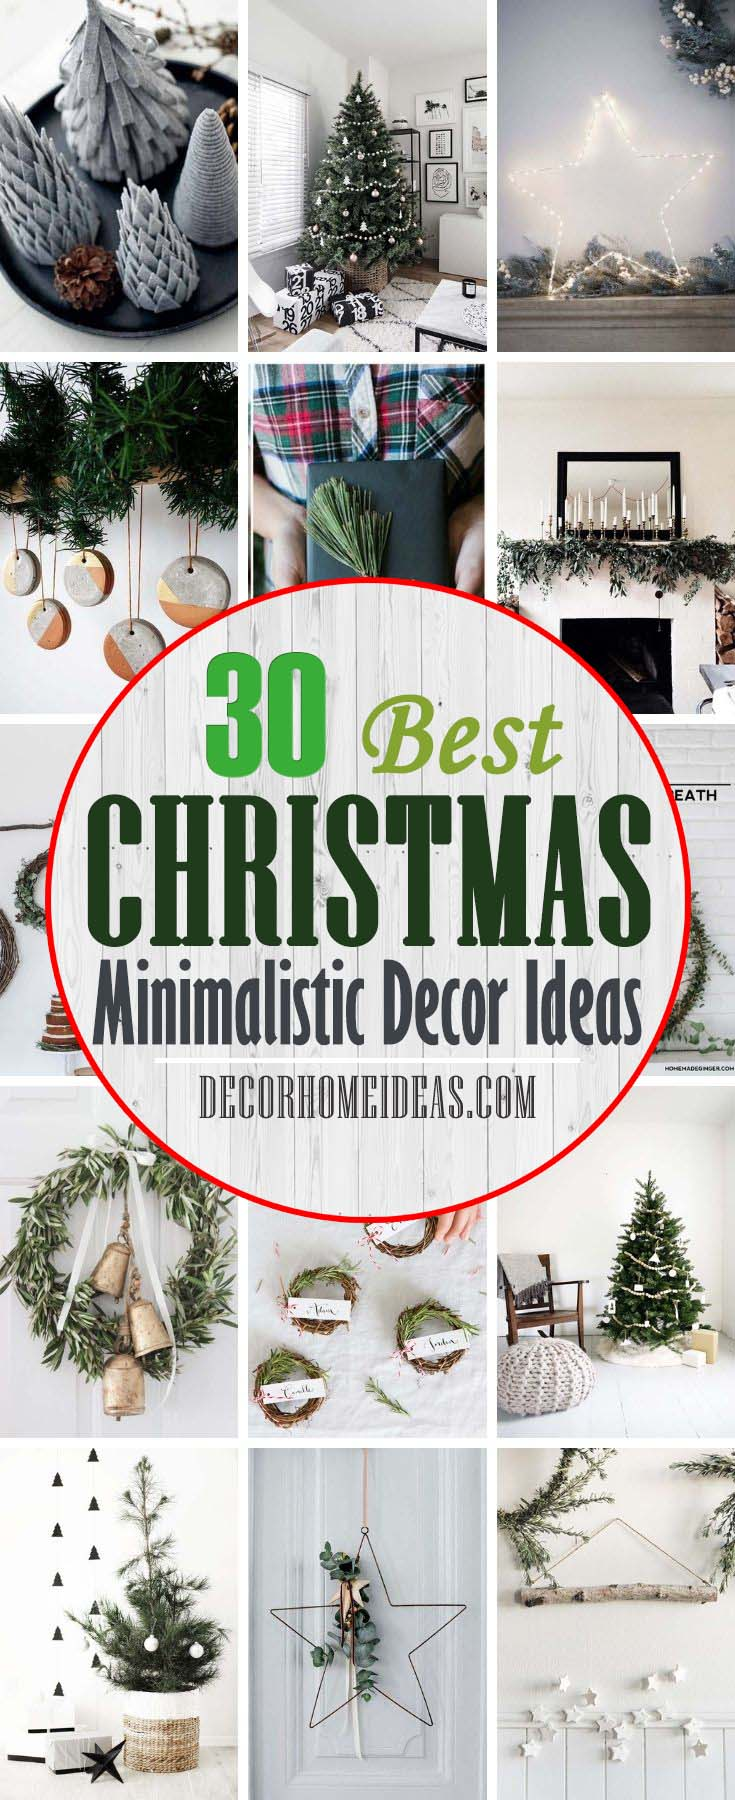 Best Minimalistic Christmas Decor Ideas. Holiday cheer can come in small doses — but still make a big impact. Take a look at these simply adorable minimalistic Christmas decor ideas that will inspire your for this holiday season. #decorhomeideas